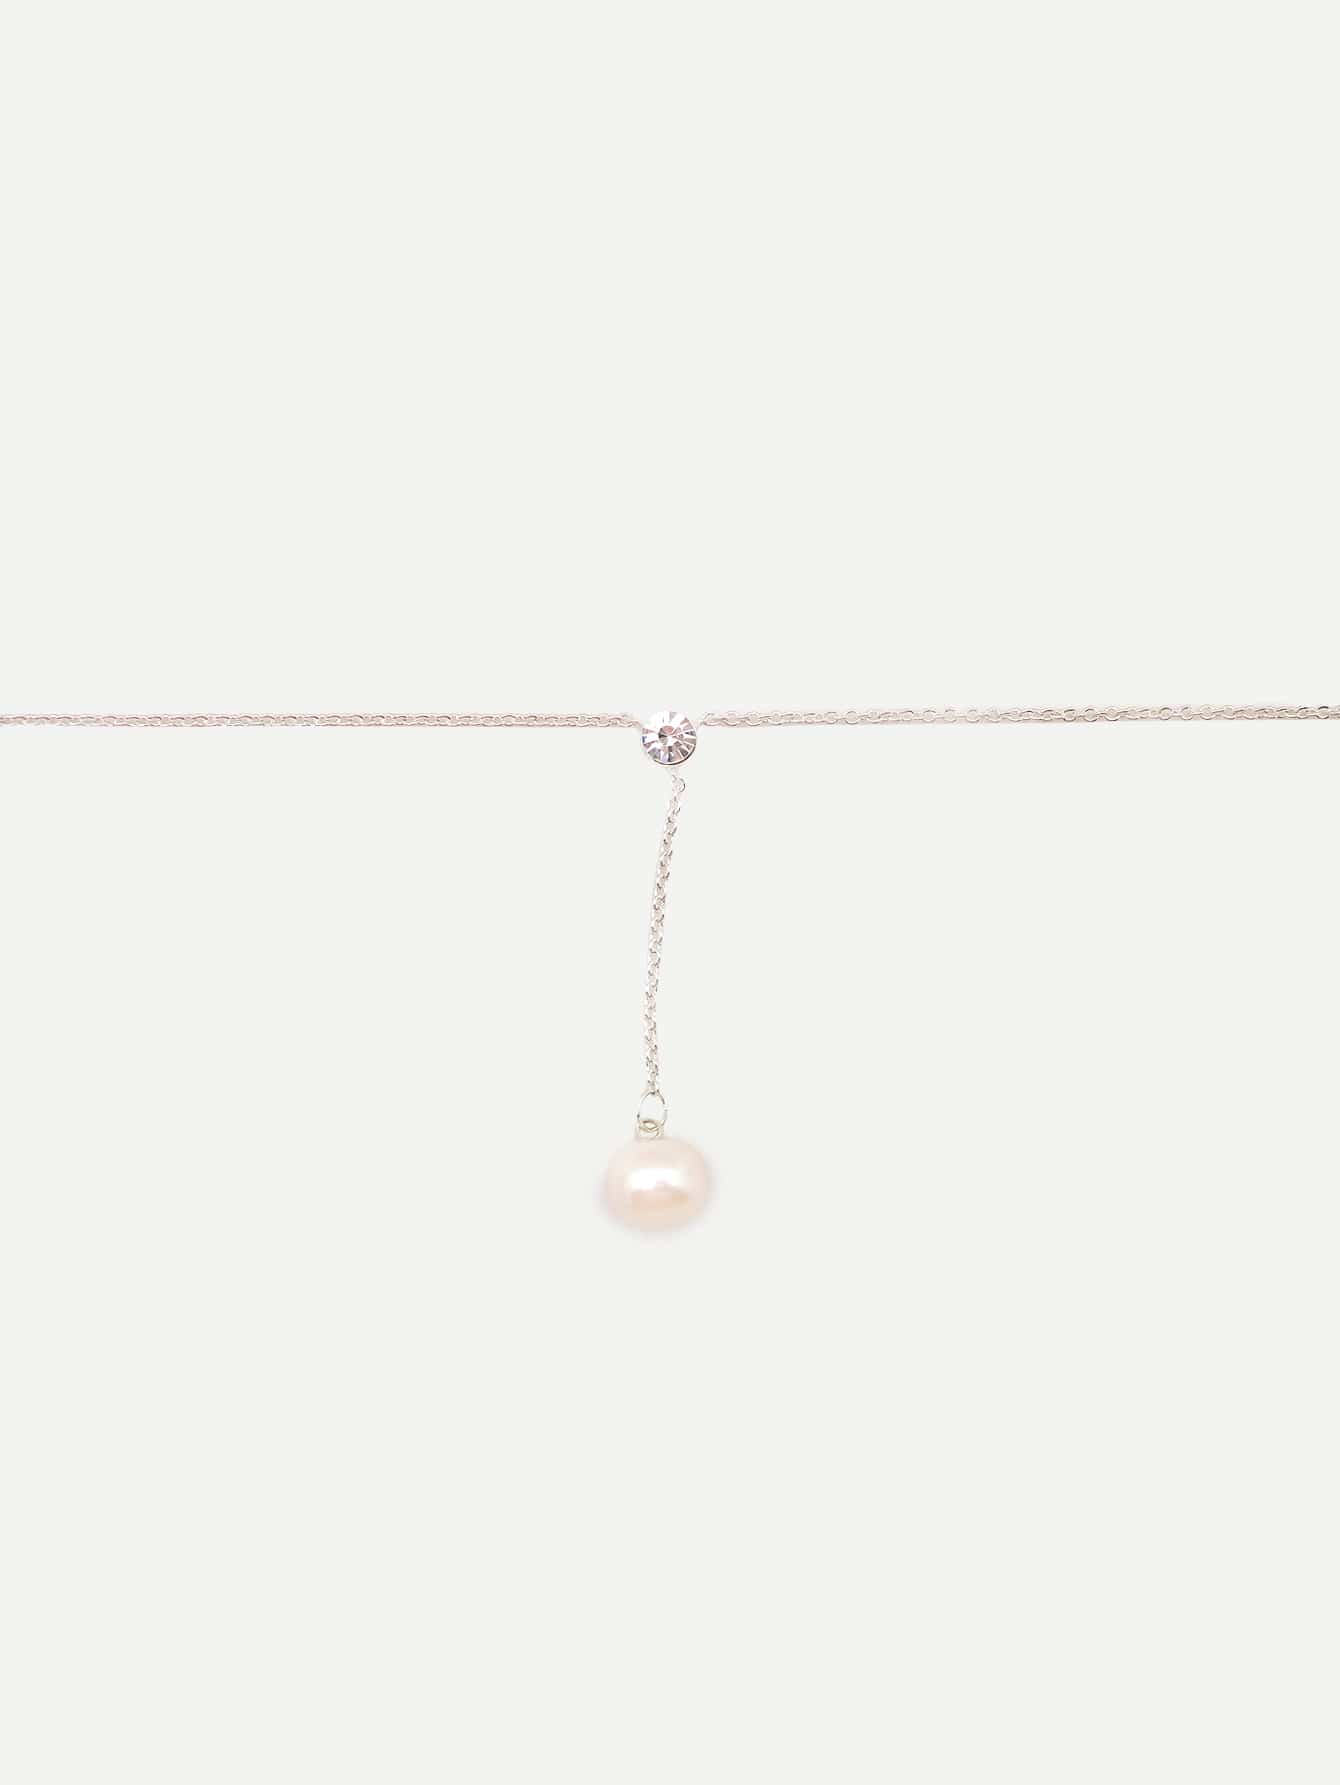 Grey Pearl Pendant Silver Metal Chain Necklace